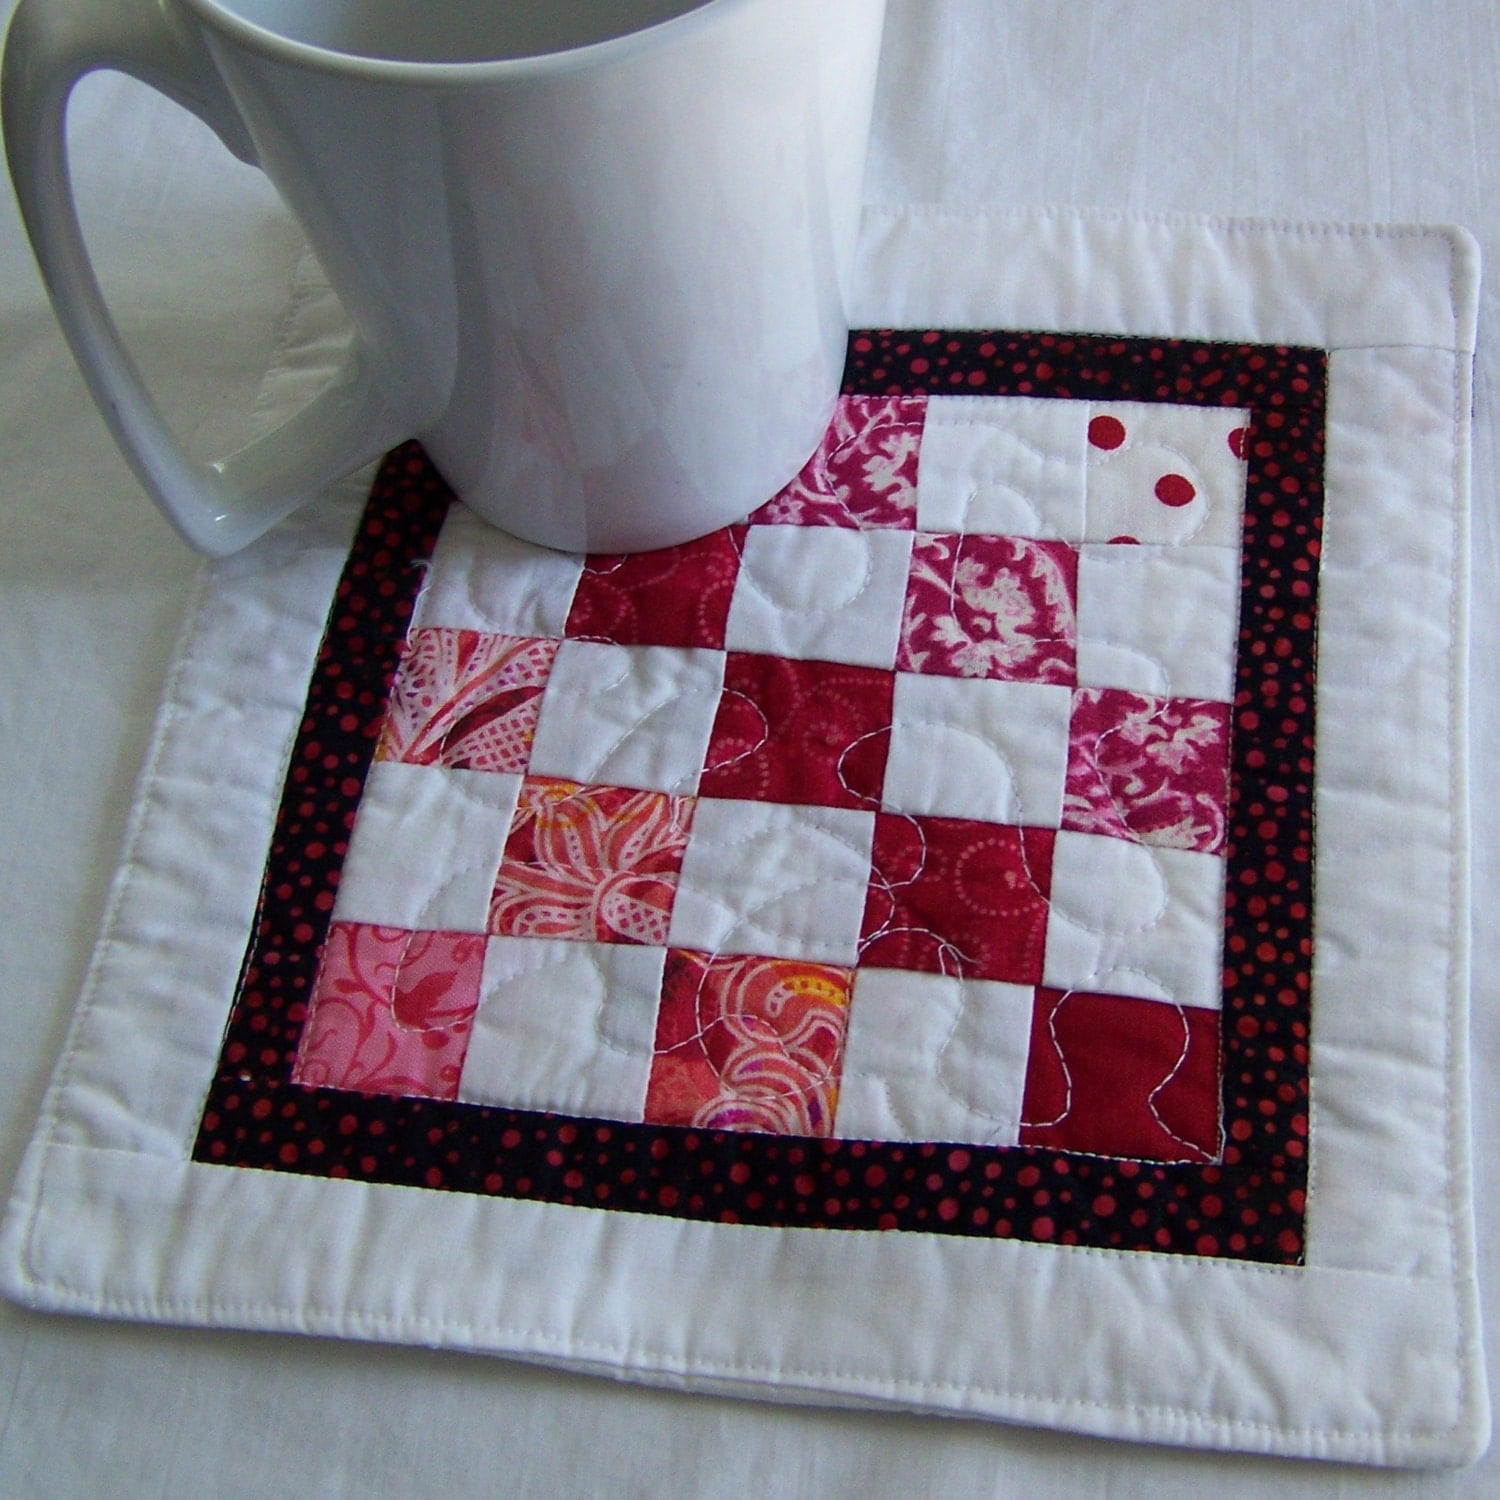 Coaster Mug Rug Or Mini Quilt In Pink And White